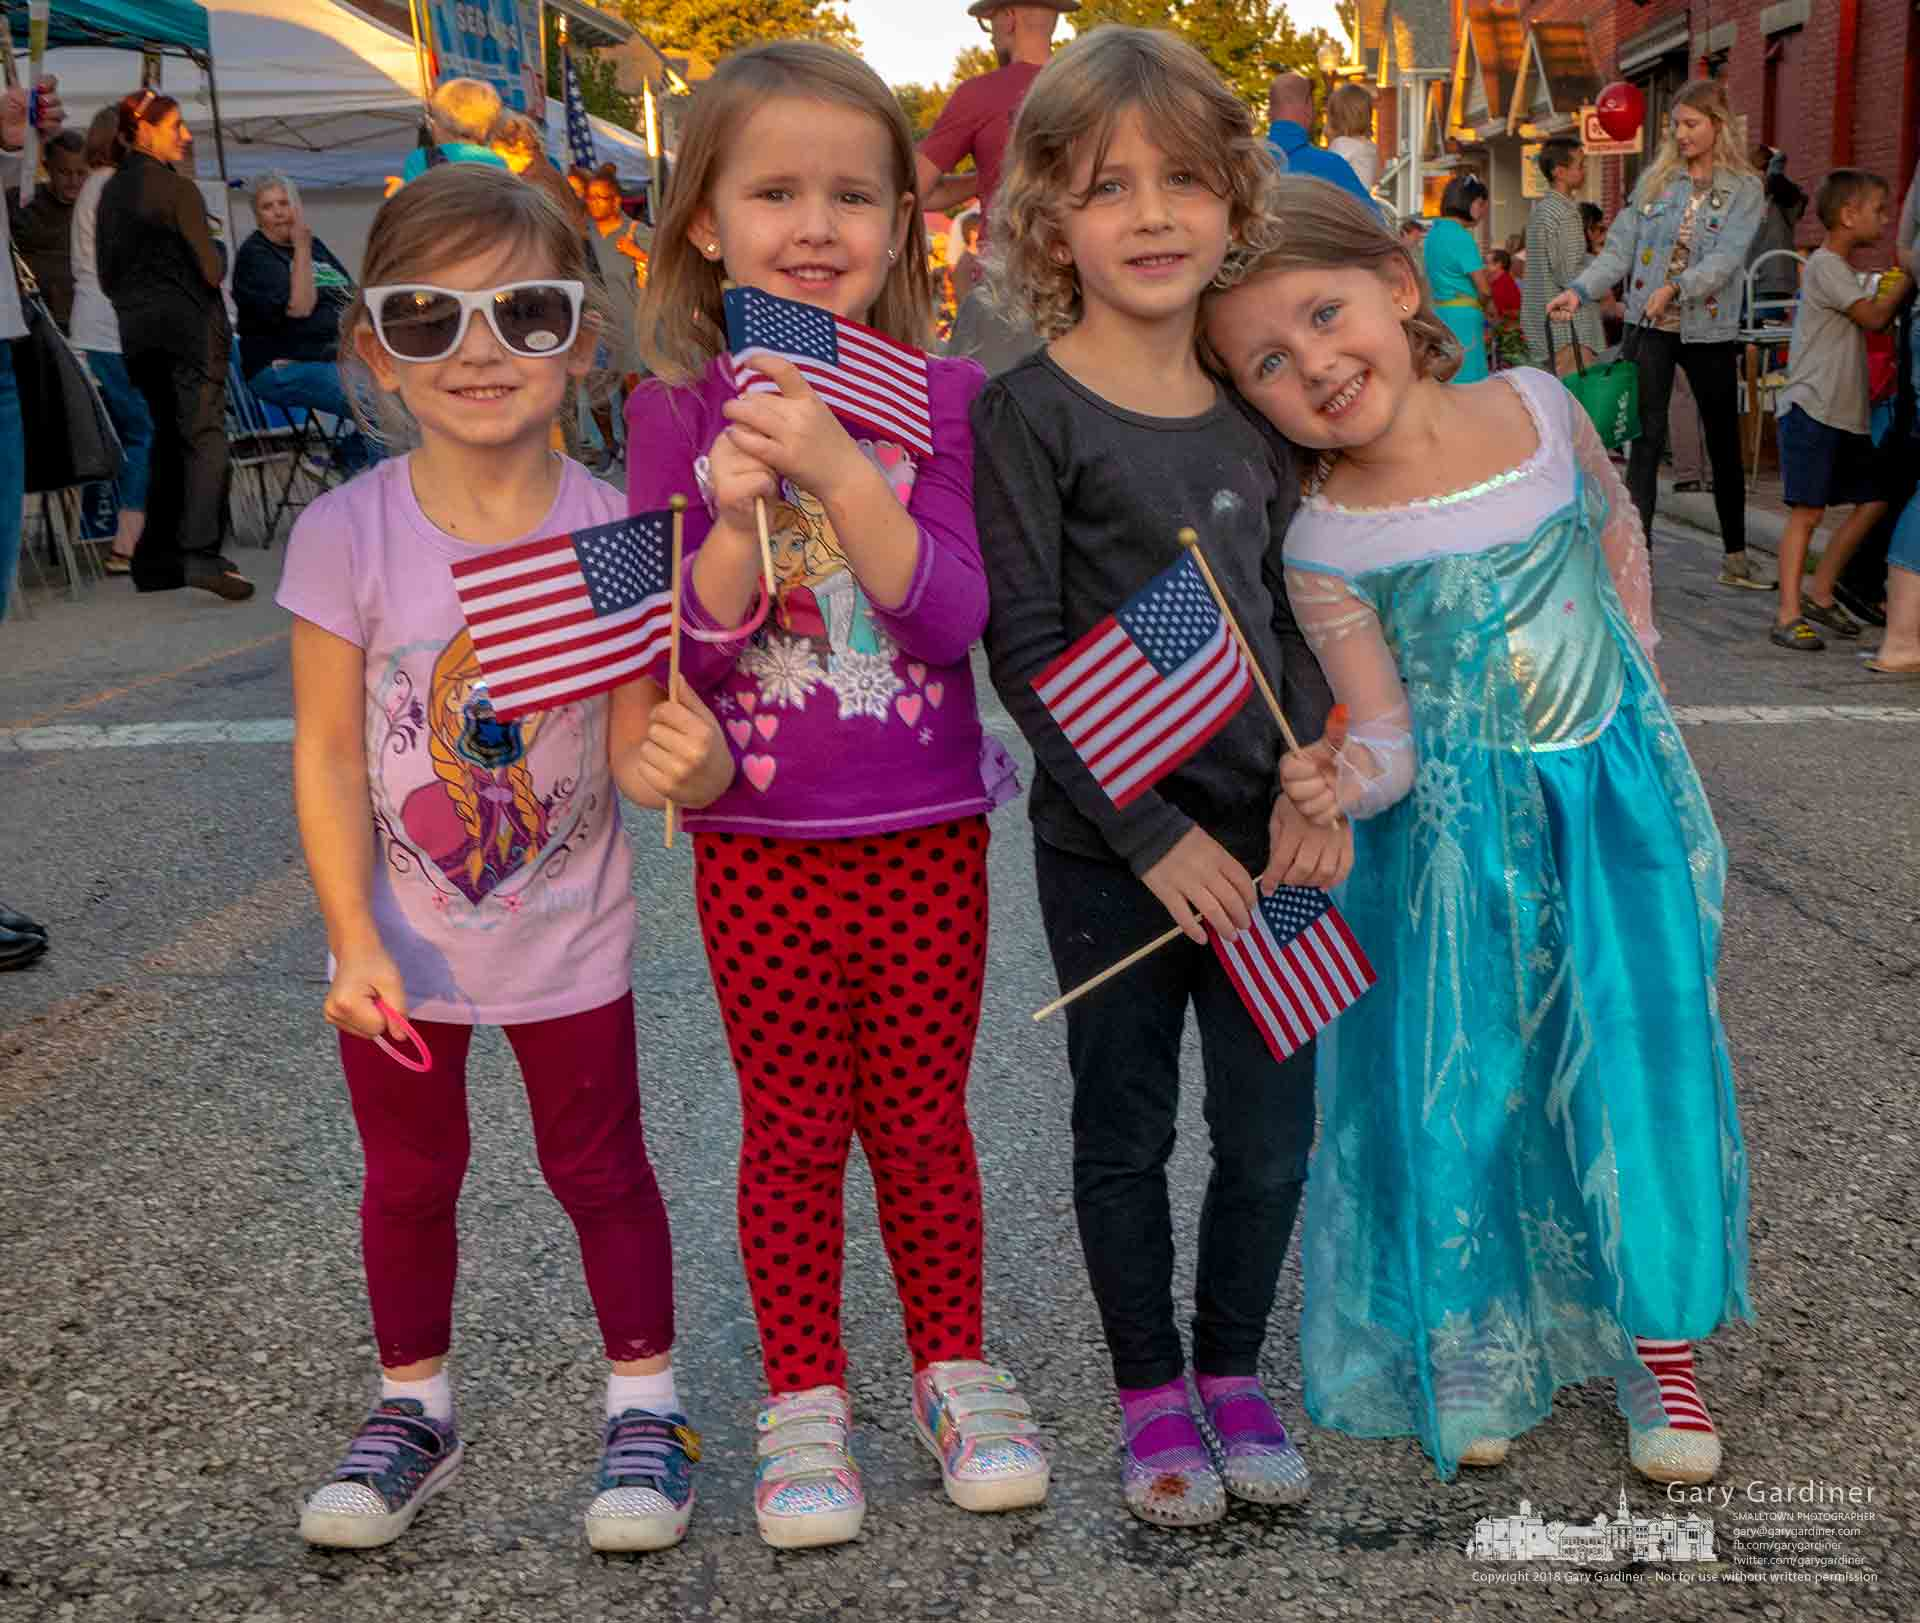 Four young girls pose with the flags given to them by members of the Westerville American Legion post durinf Fourth Friday in Uptown Westerville. My Final Photo for Sept. 28, 2018.